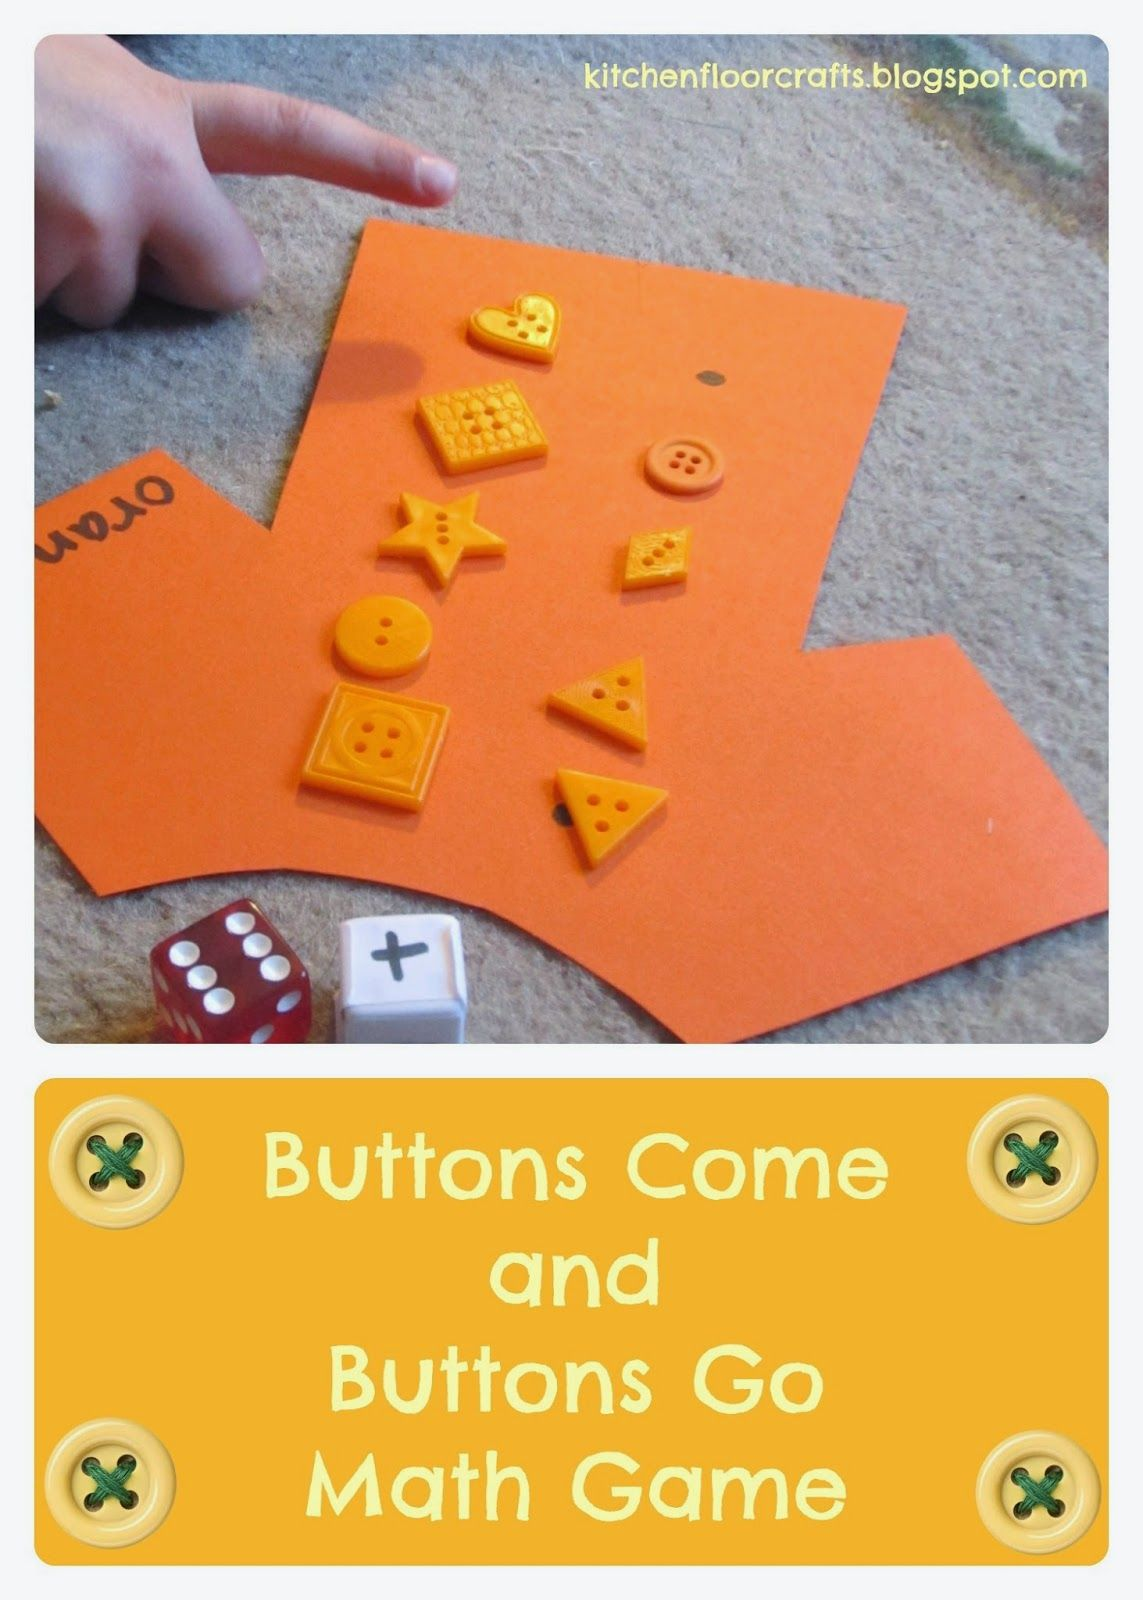 Kitchen Floor Crafts Buttons Come And Buttons Go A Pete The Cat Game